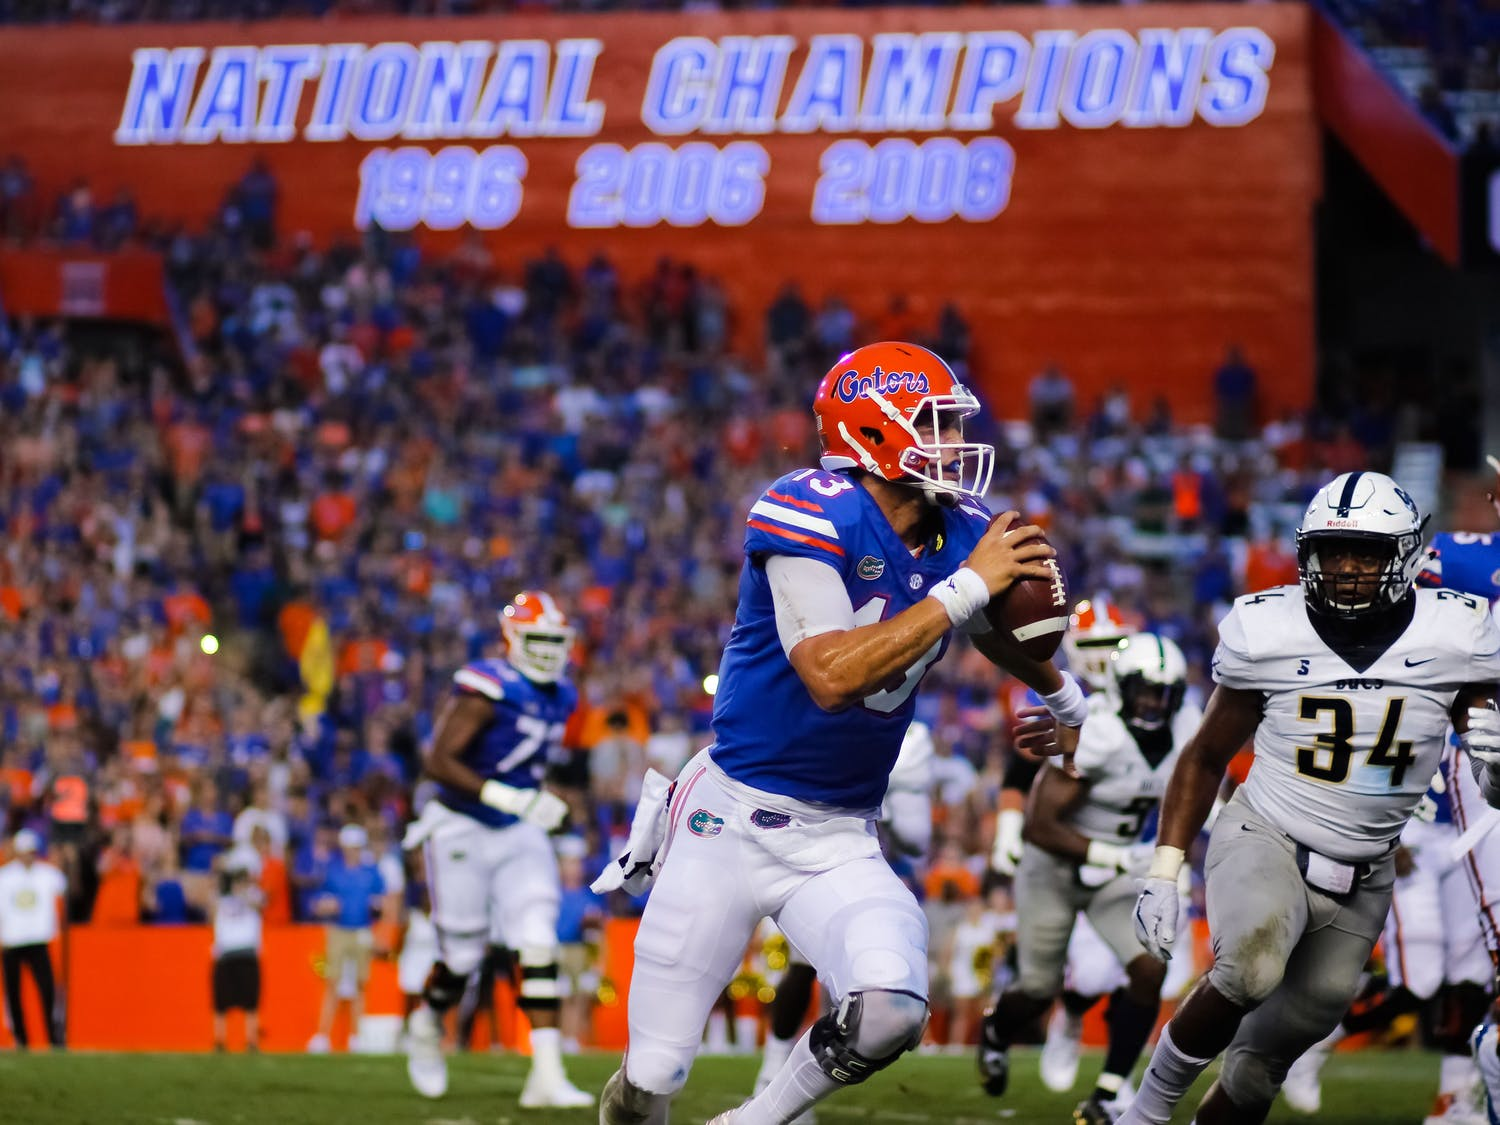 Quarterback Feleipe Franks went 16-for-24 for 219 yards and five touchdowns in the first half against Charleston Southern before being subbed out for the second half.